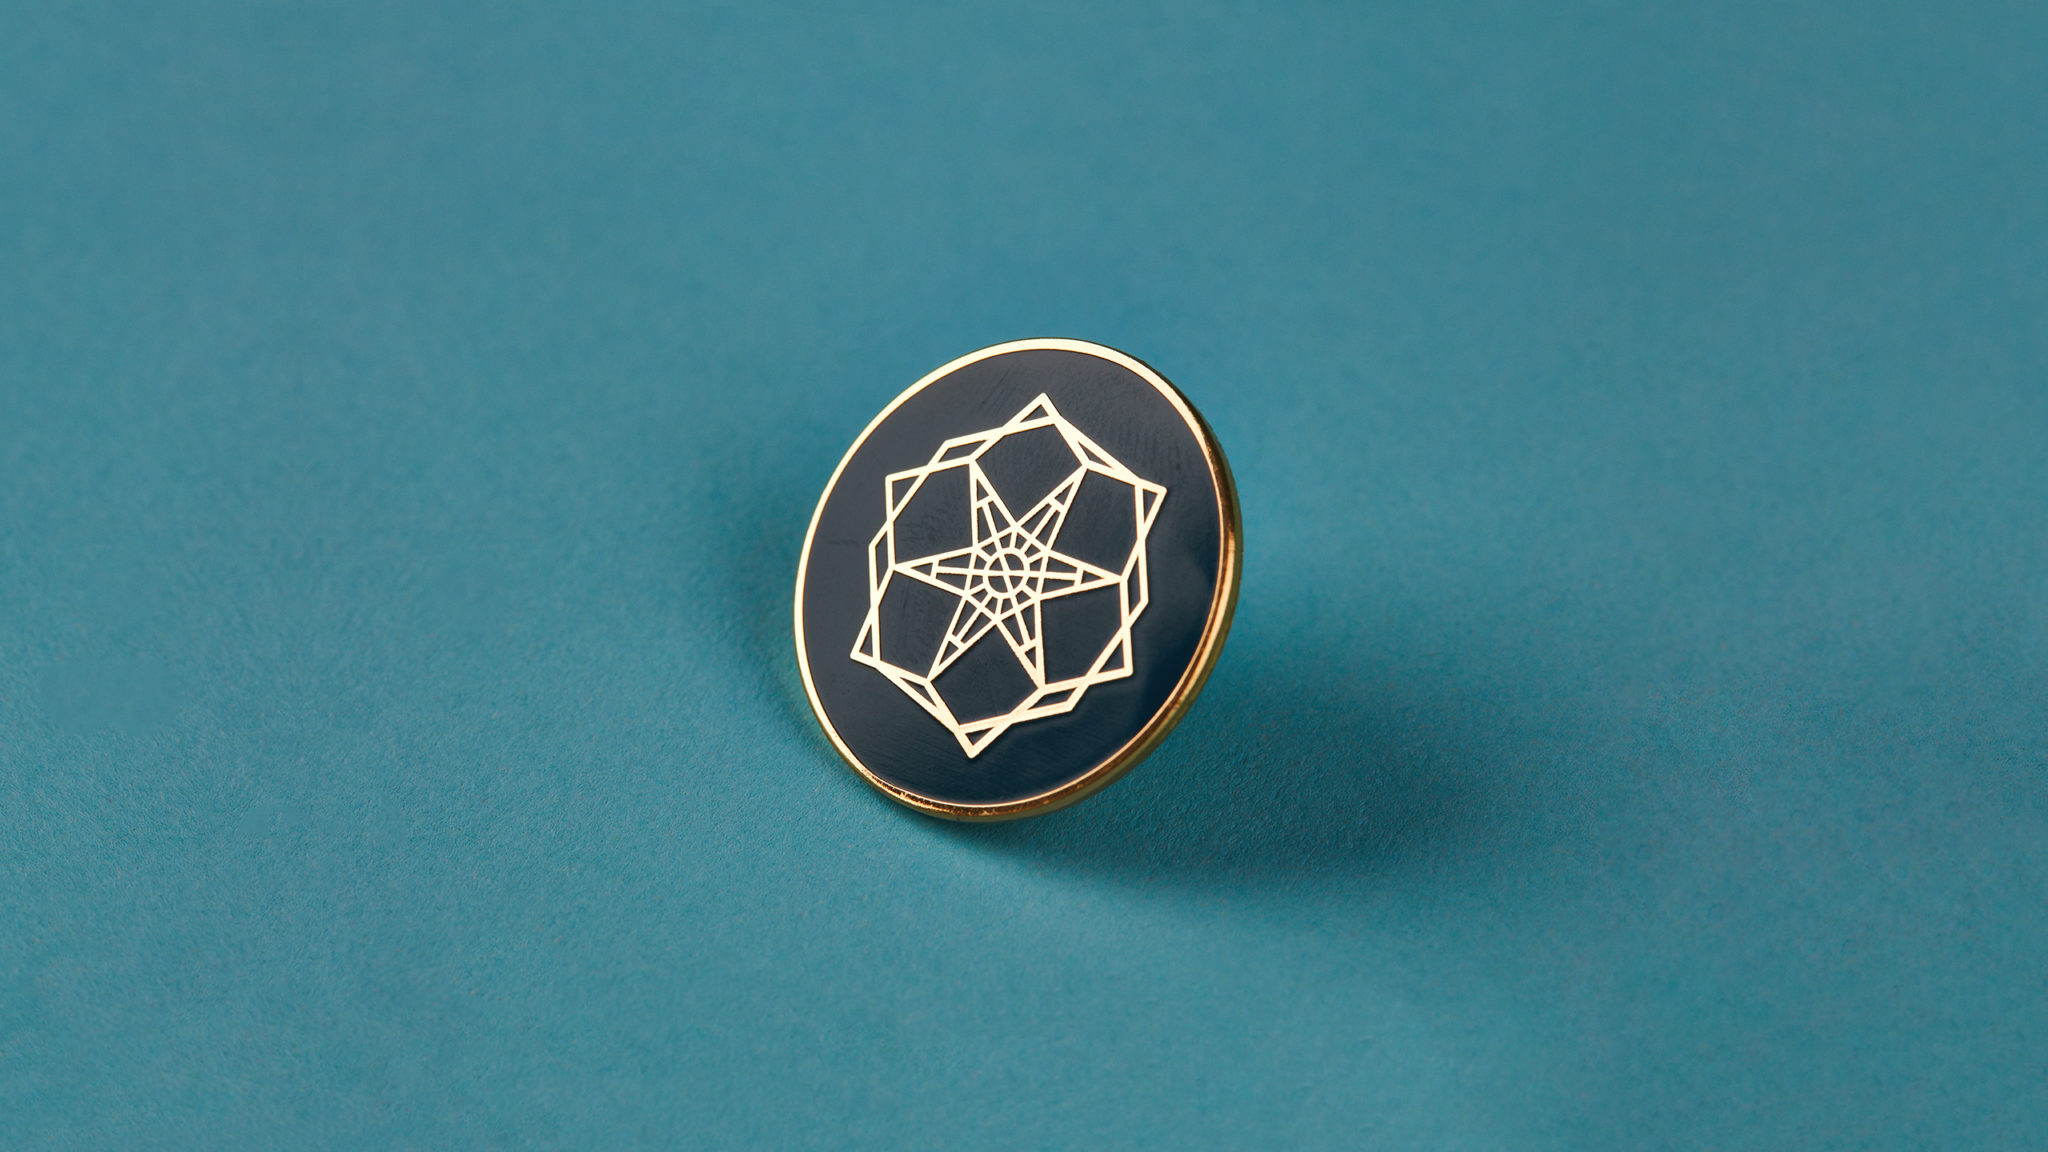 Turkish Baths Harrogate Branding, Pin Badge